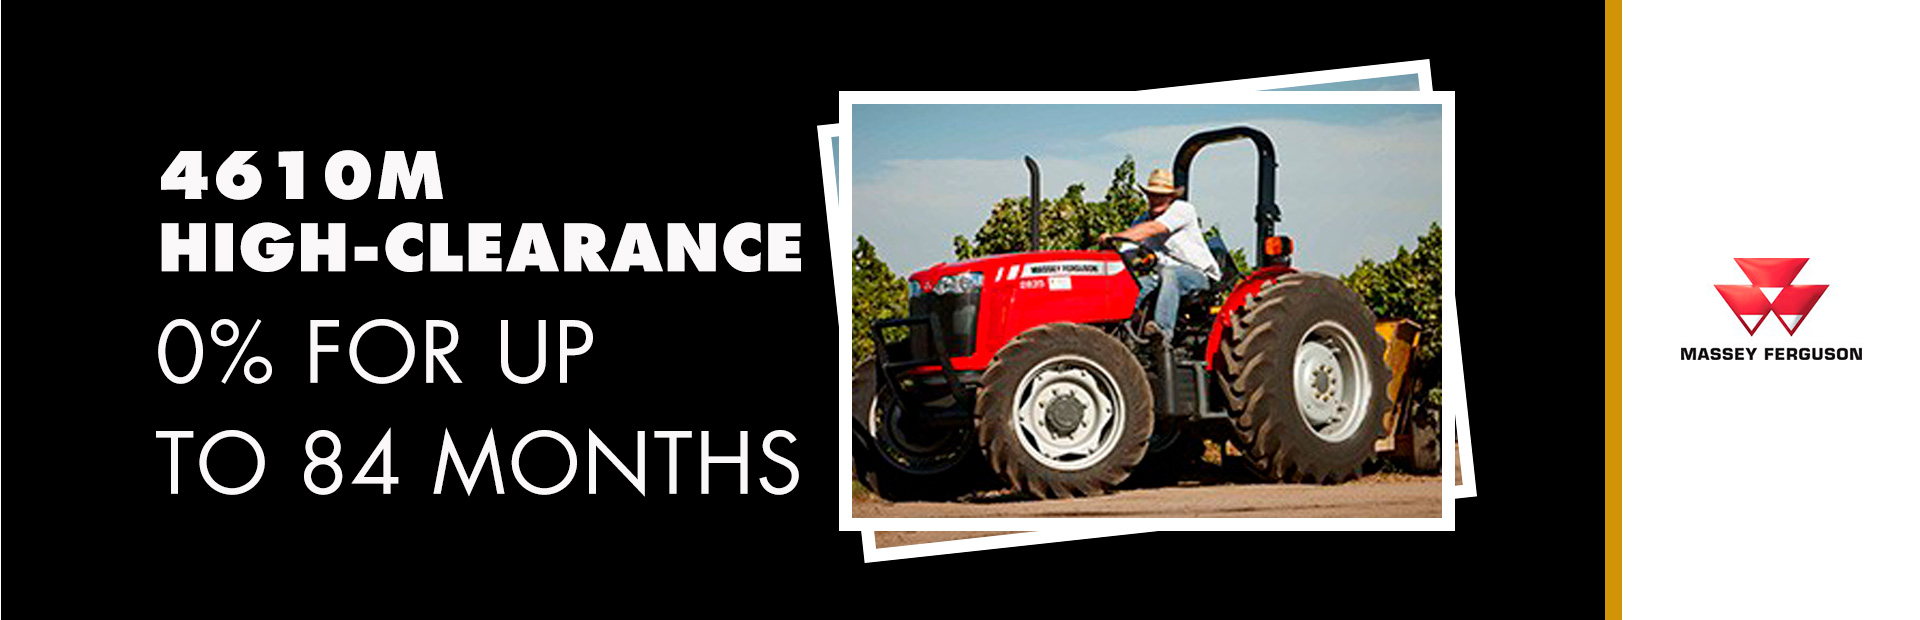 Massey Ferguson: 4610M High-Clearance - 0% for up to 84 Months